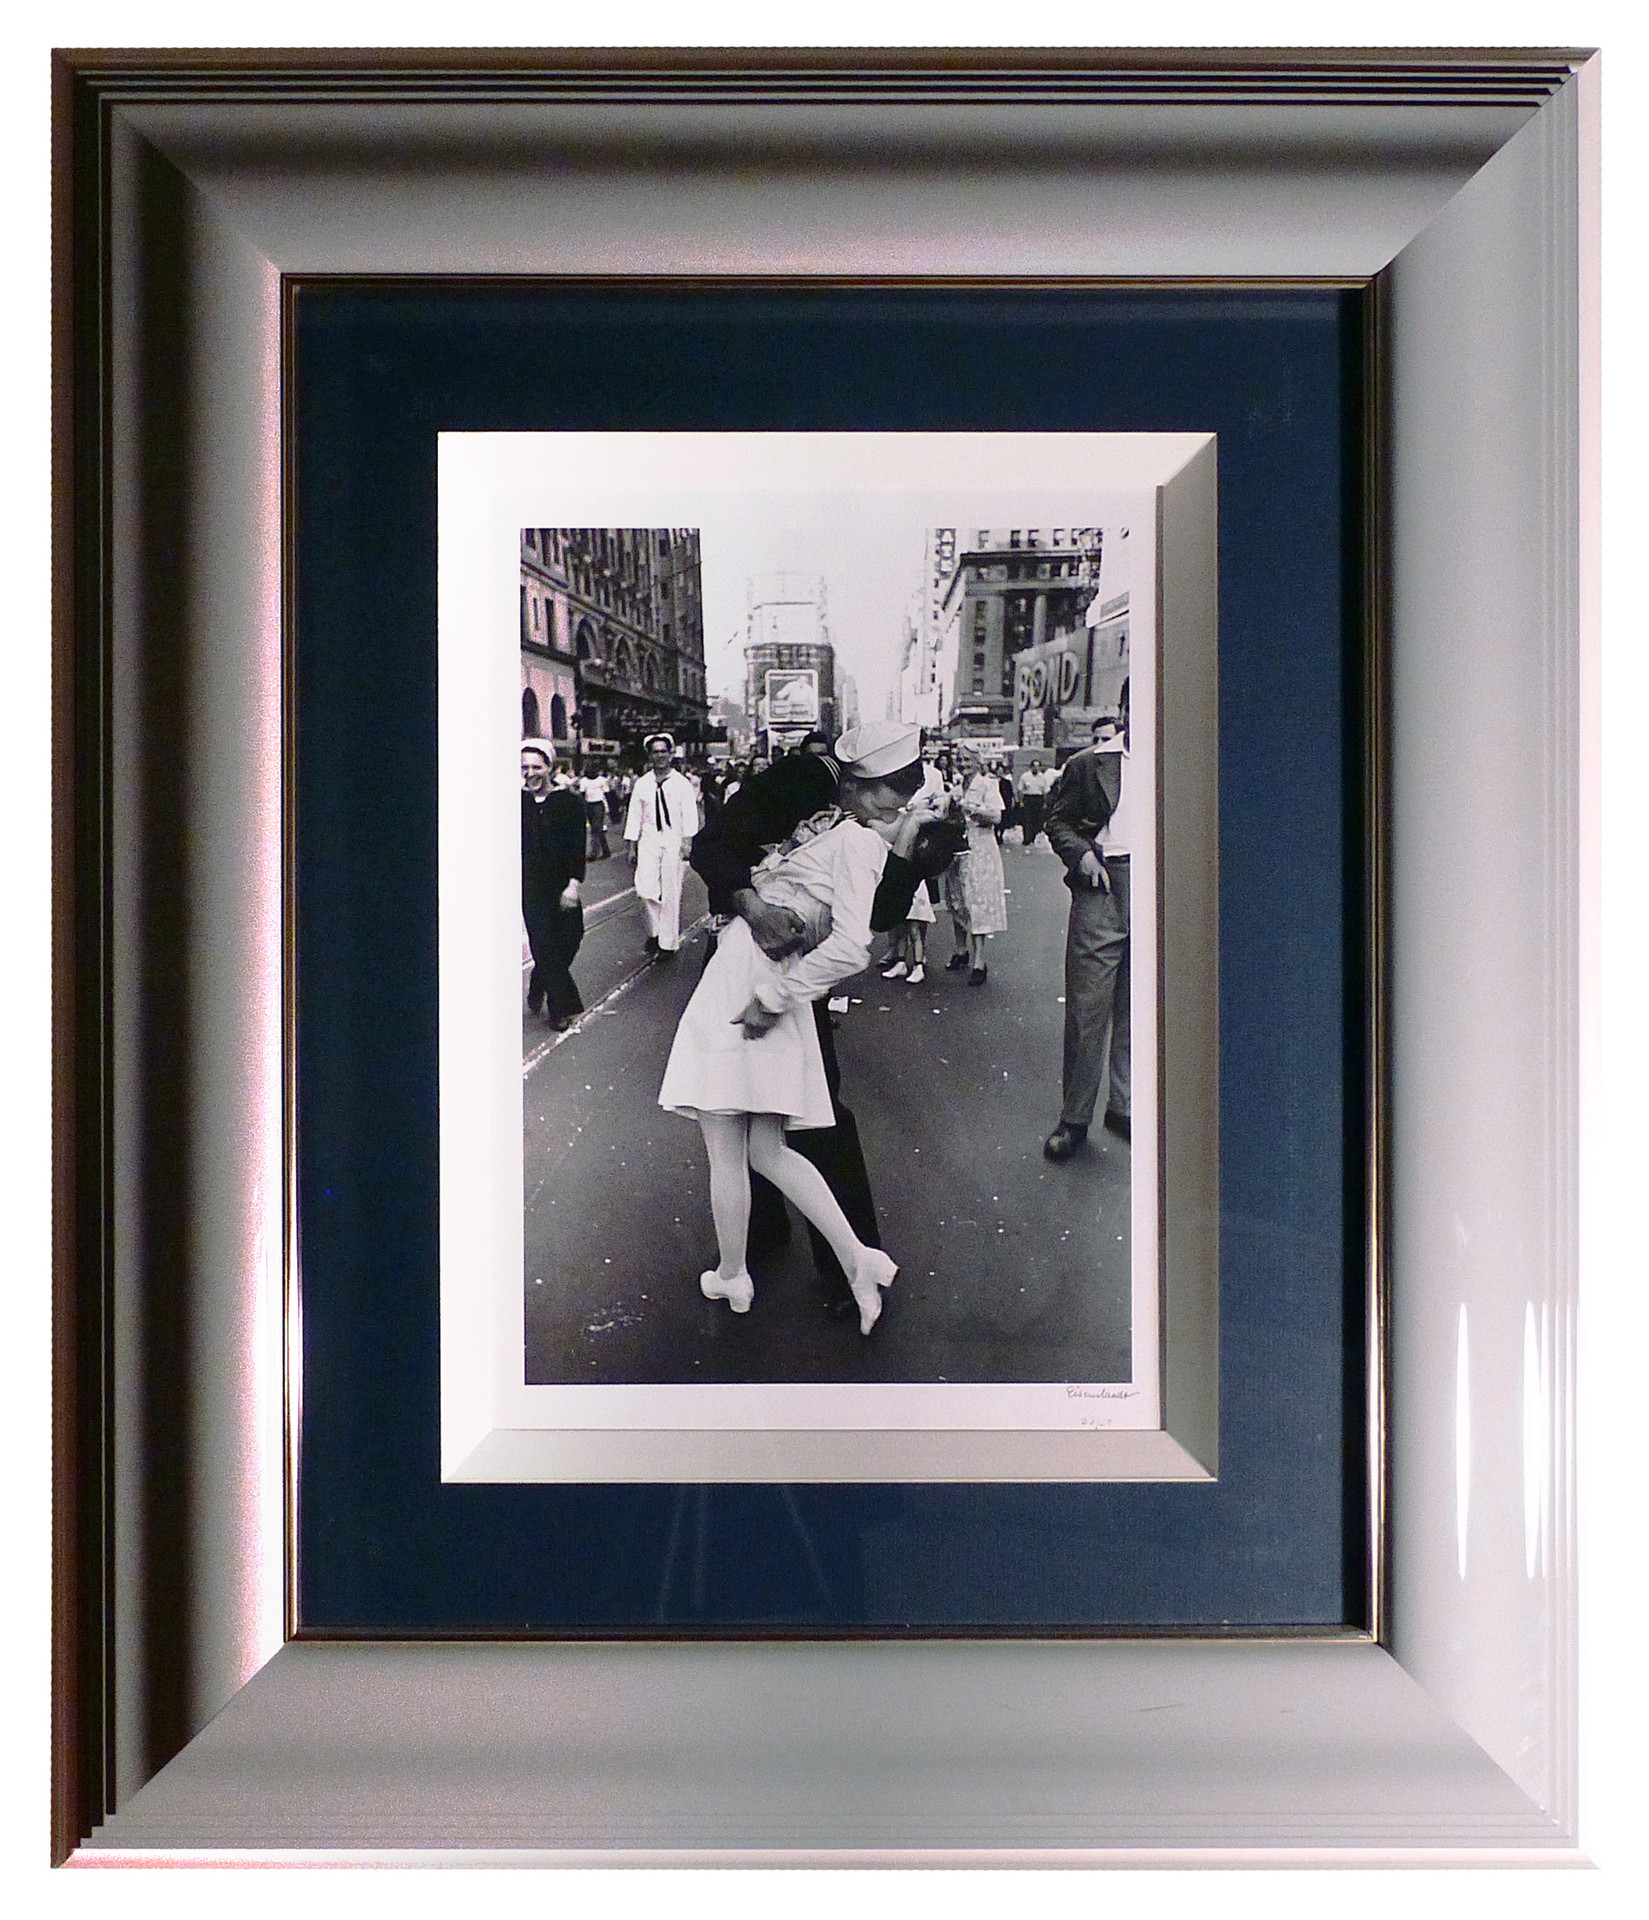 VJ Day in Times Square  1945 Gelatin silver print 11 x 8 in. 33/50 Hand-signed and numbered